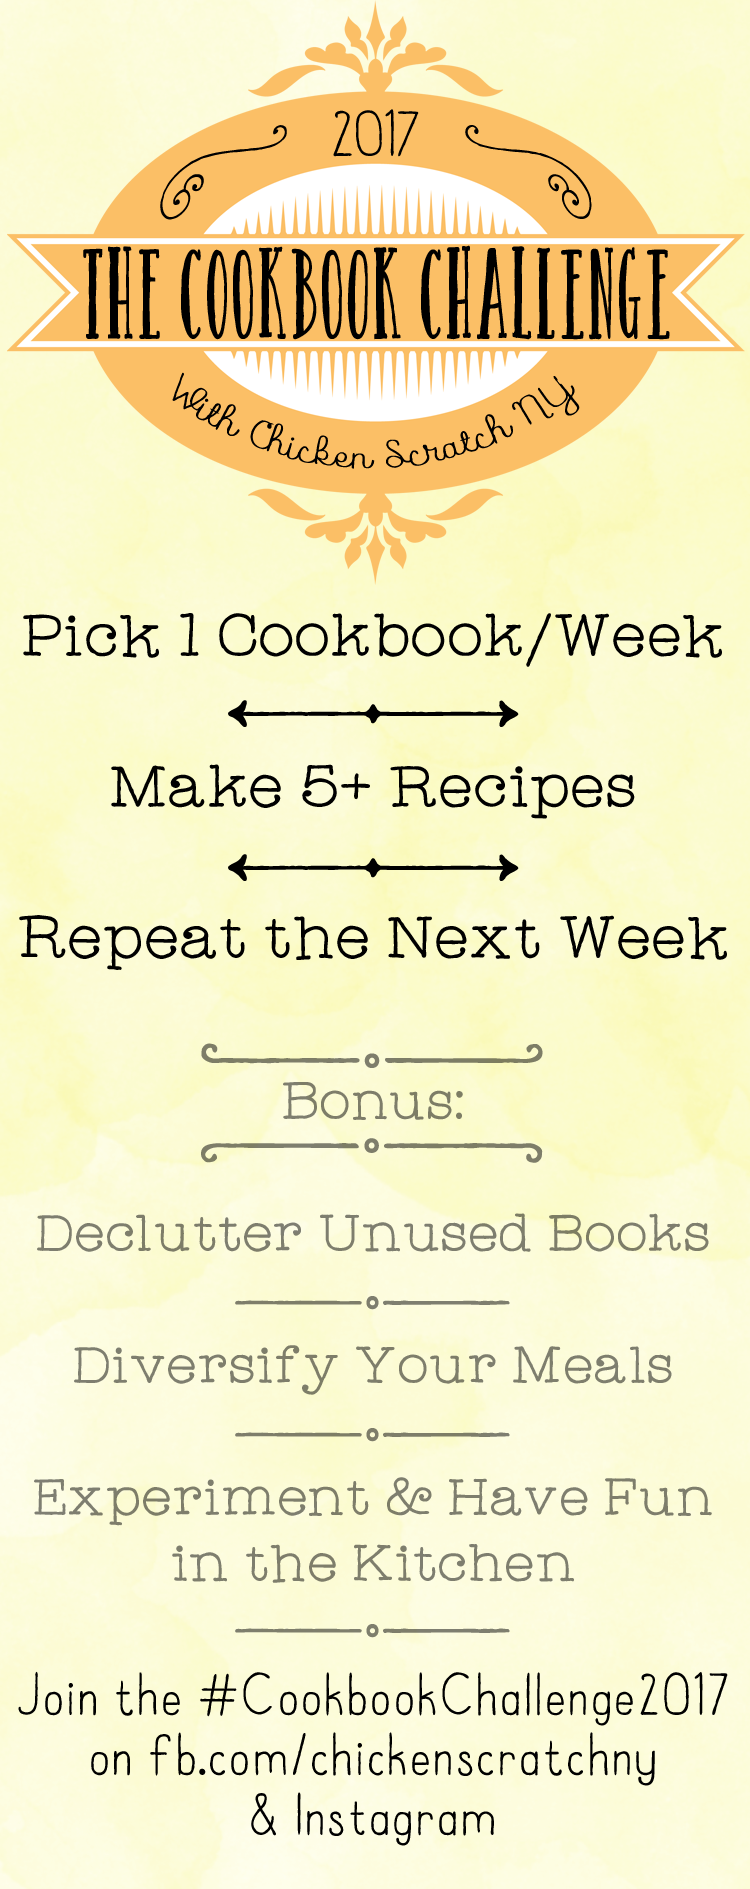 Declutter your bookshelves and diversify your meal plan while having fun in the kitchen with the 2017 Cookbook Challenge!